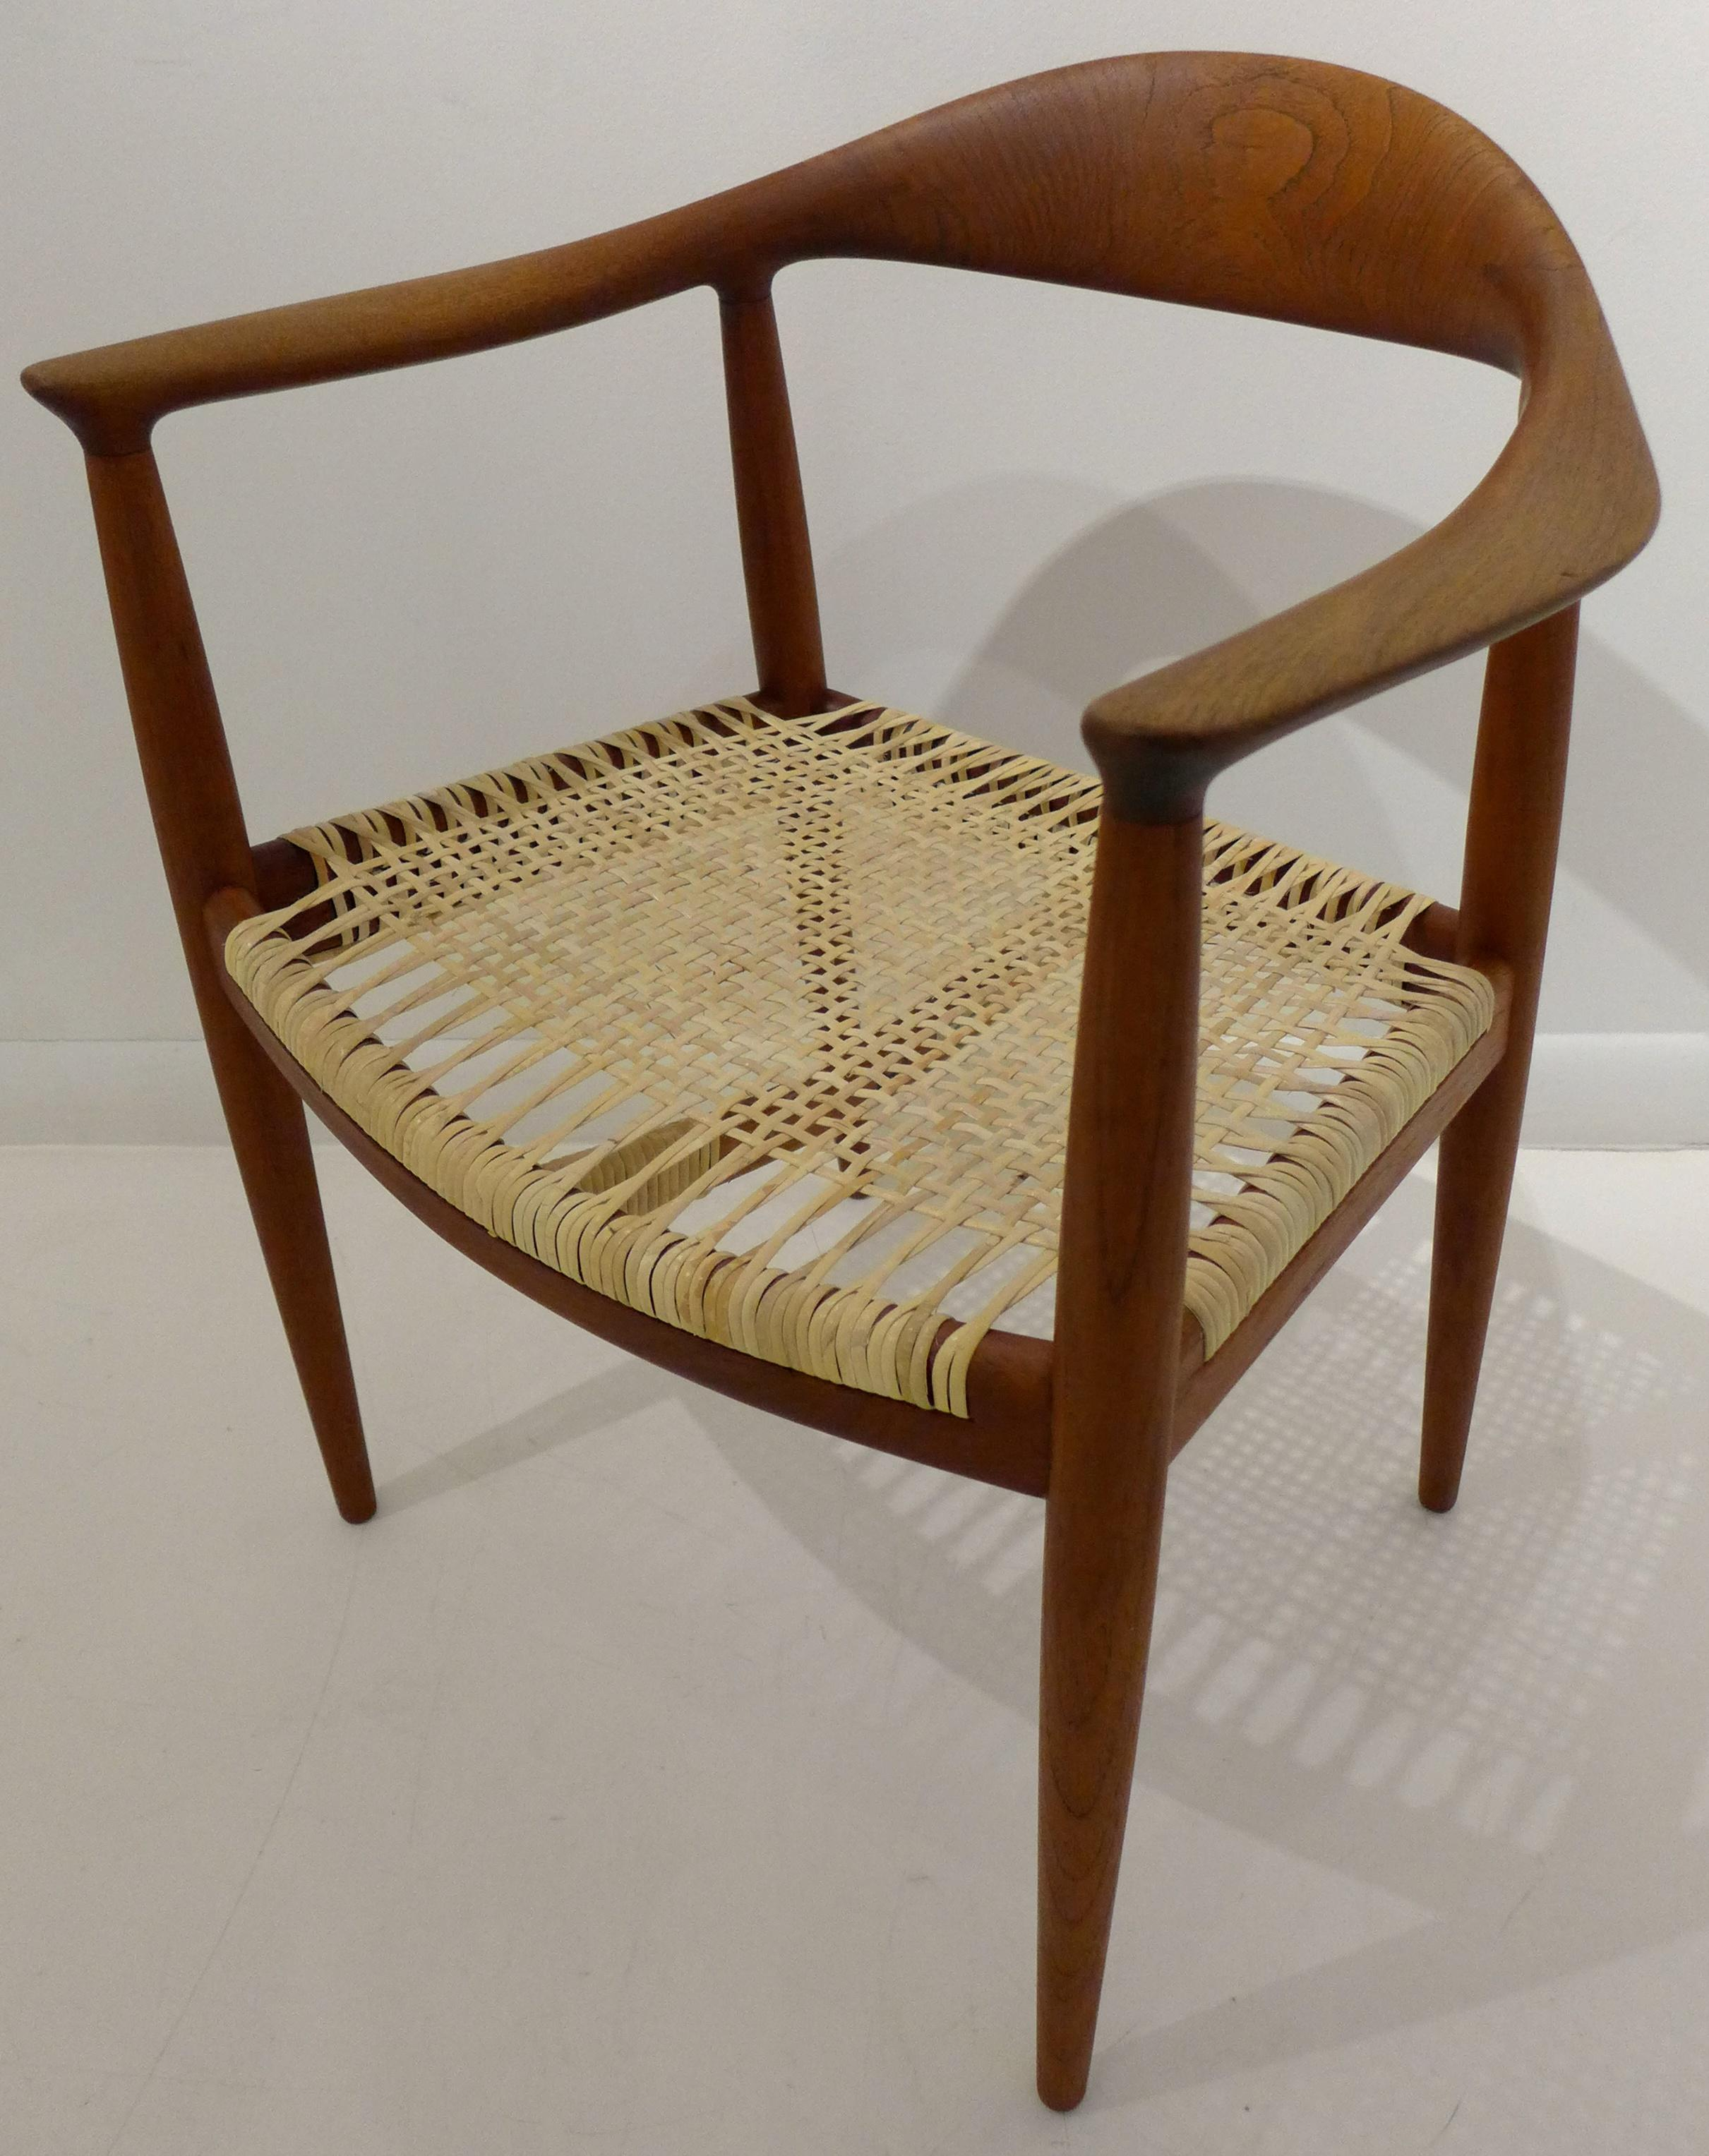 Matched Set Of Six Hans Wegner Round Chairs In Teak   Image 3 Of 10